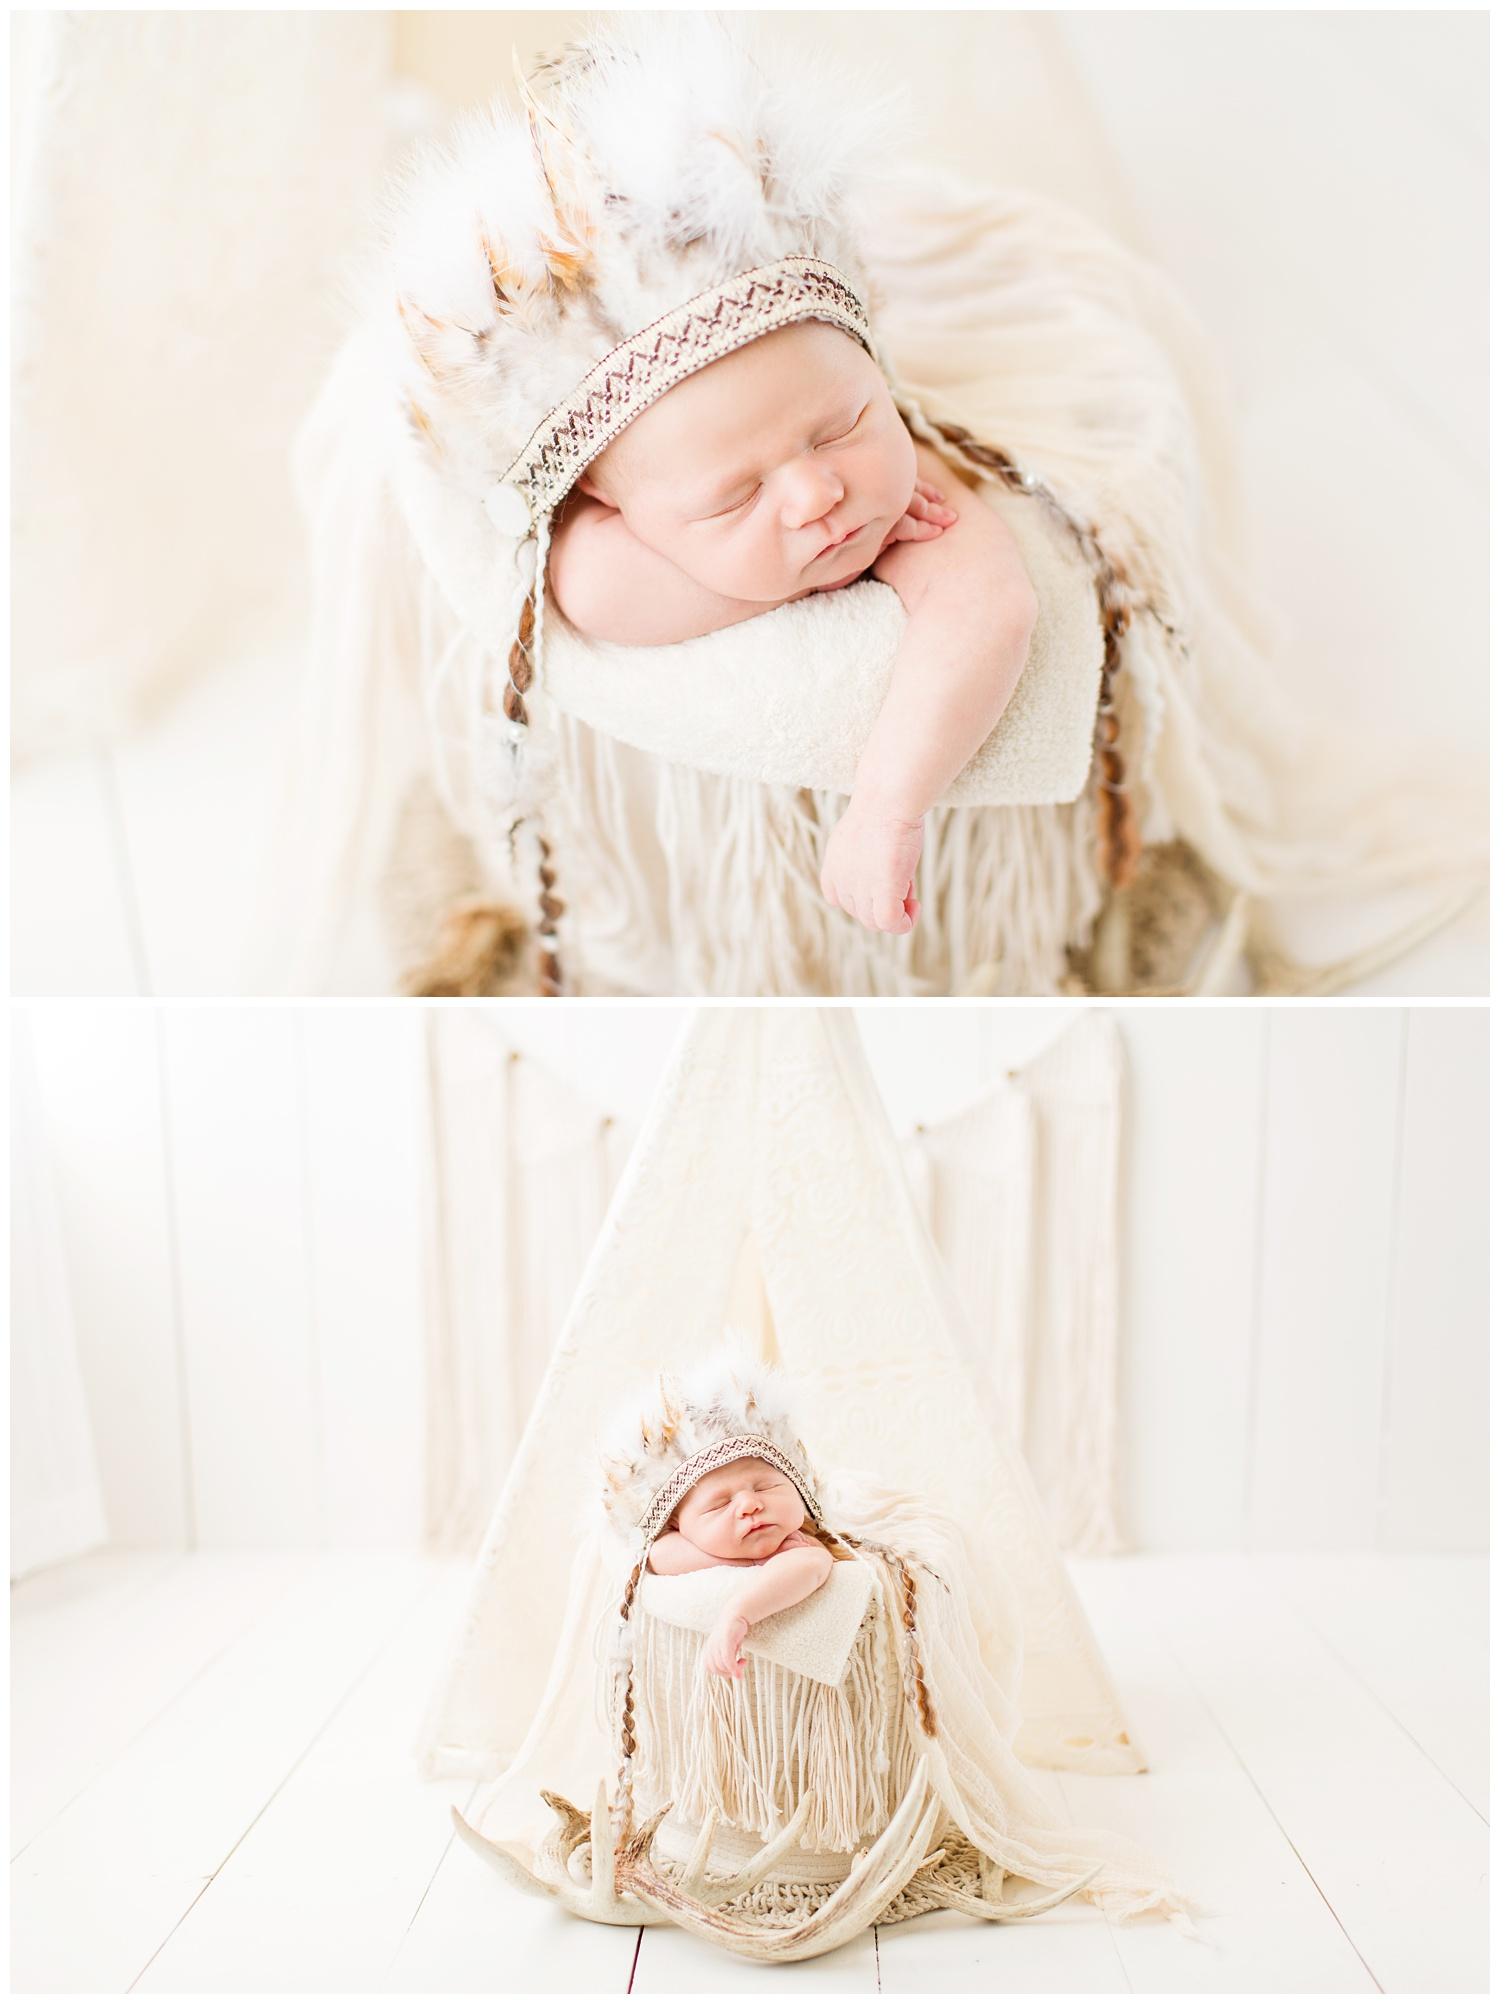 Newborn baby posing in an Indian theme photography set up wearing an Indian headdress